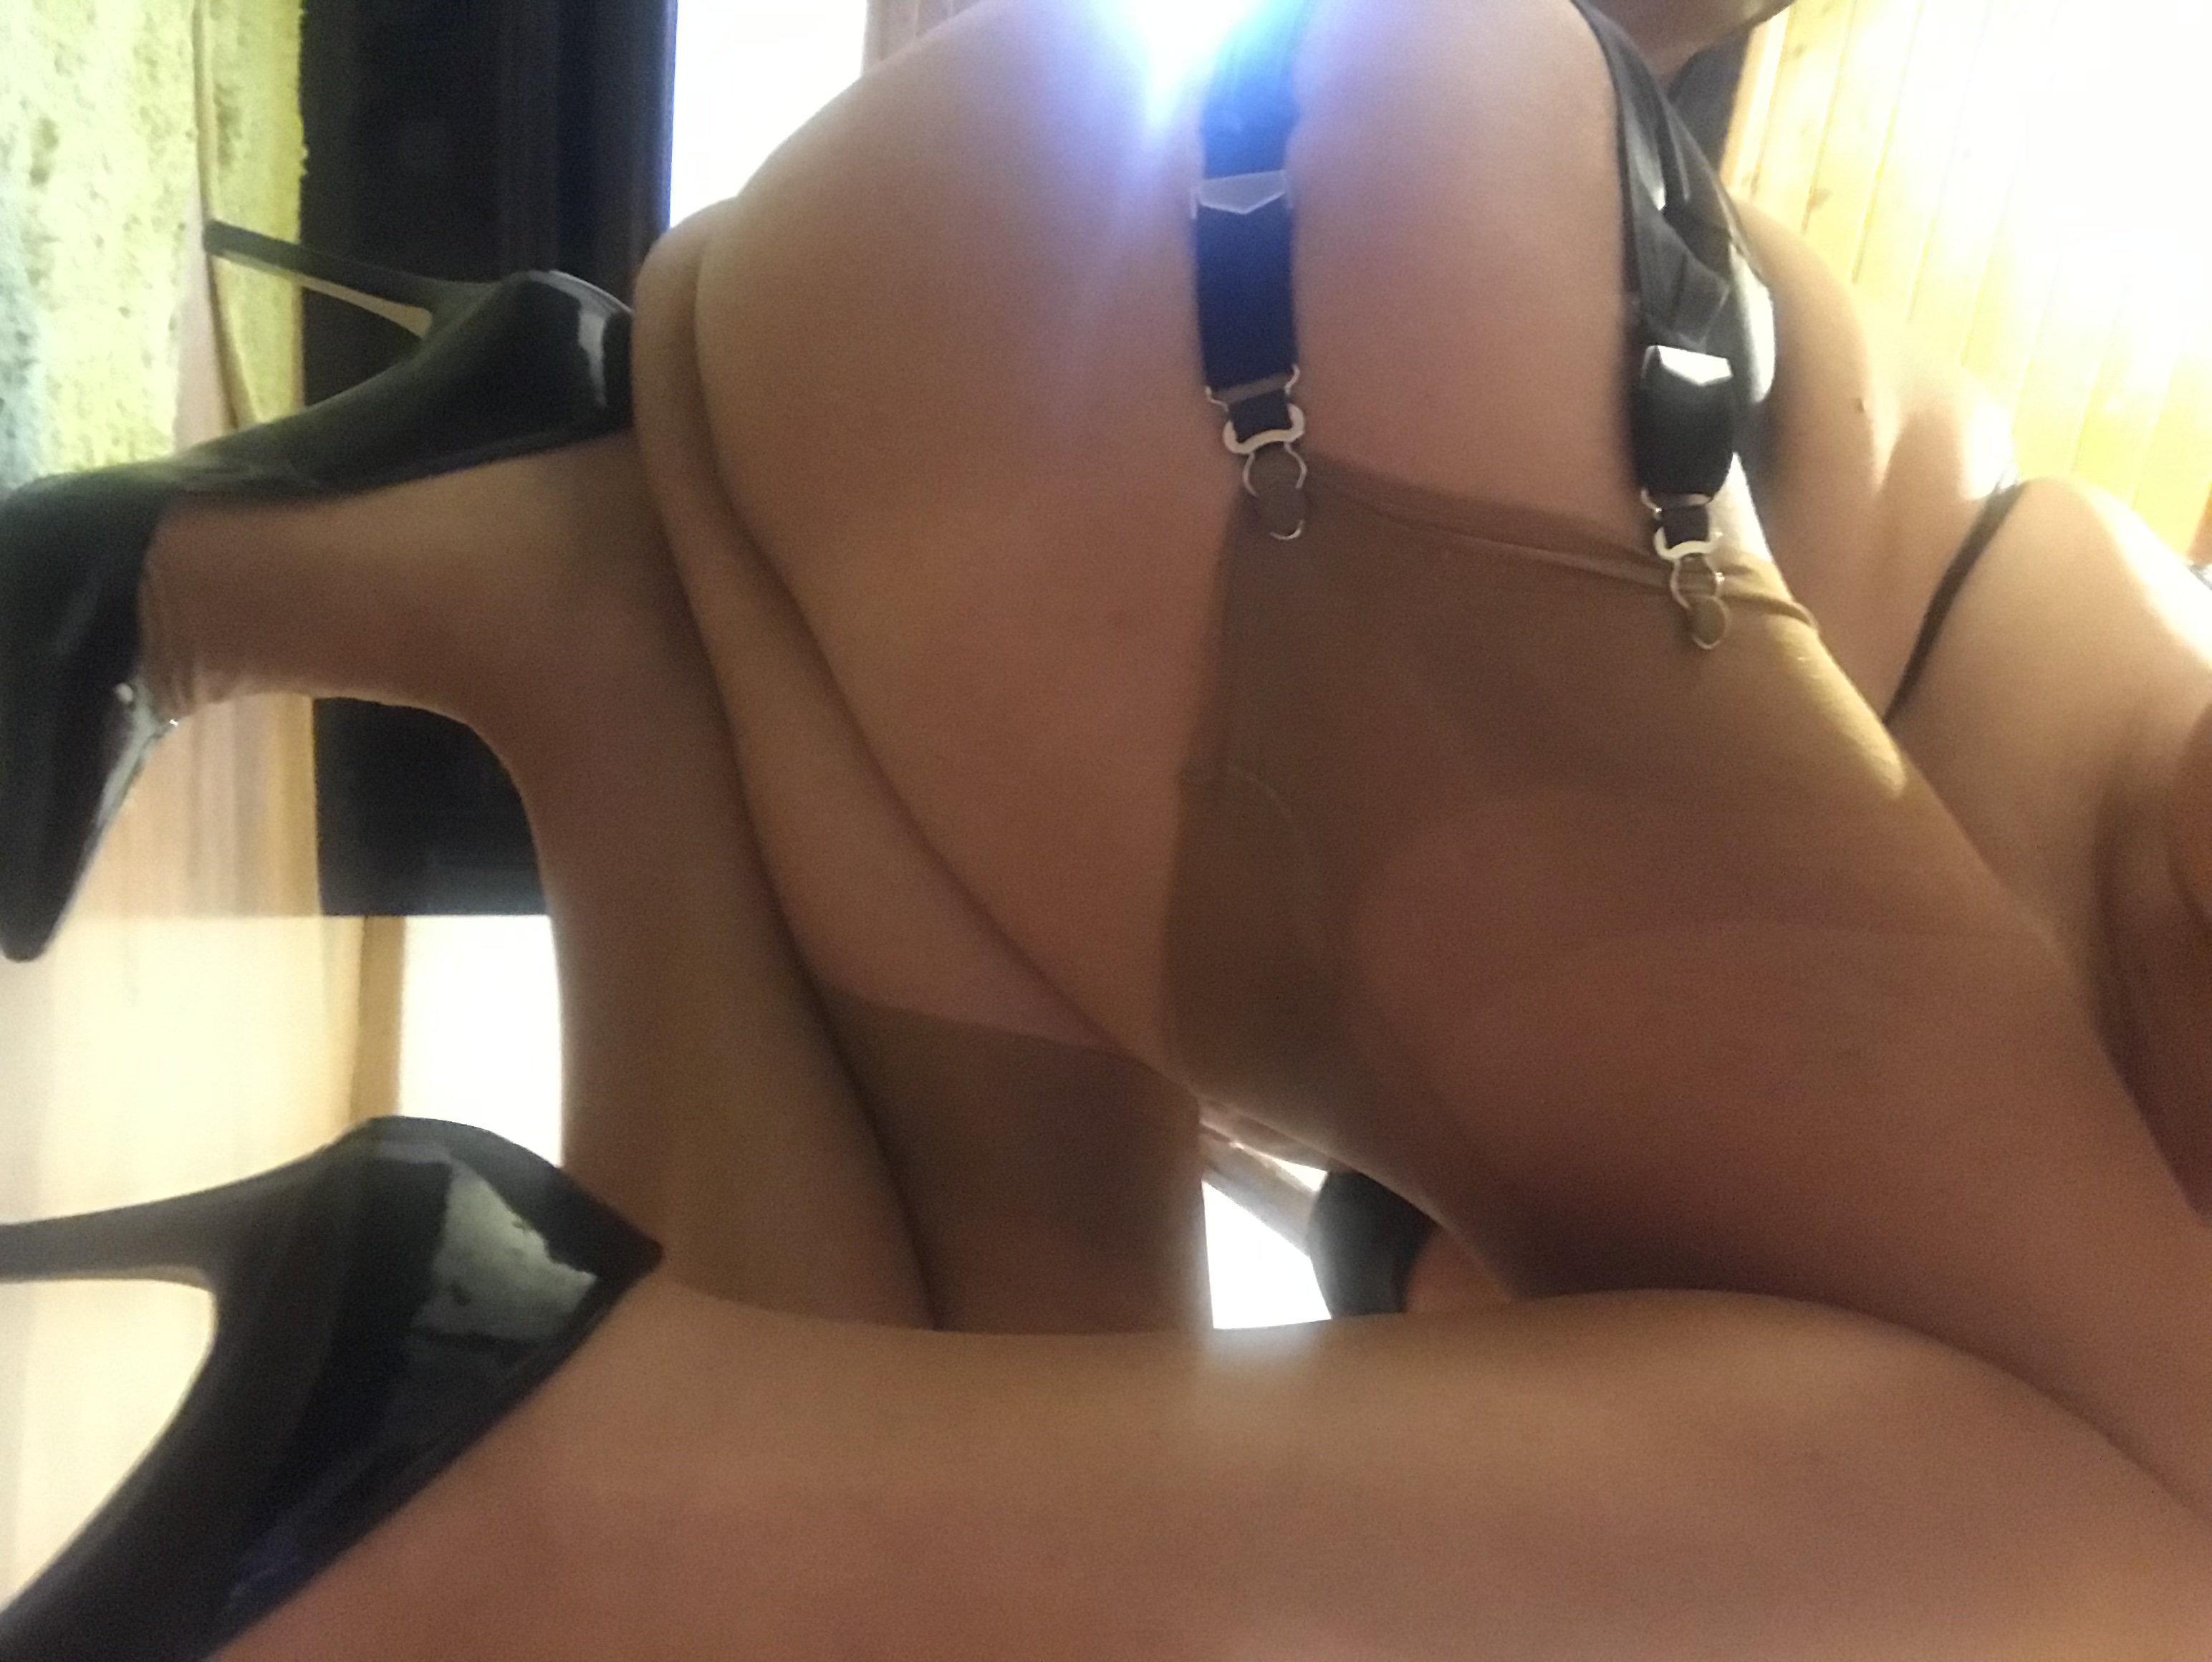 Genf milf braucht sex in